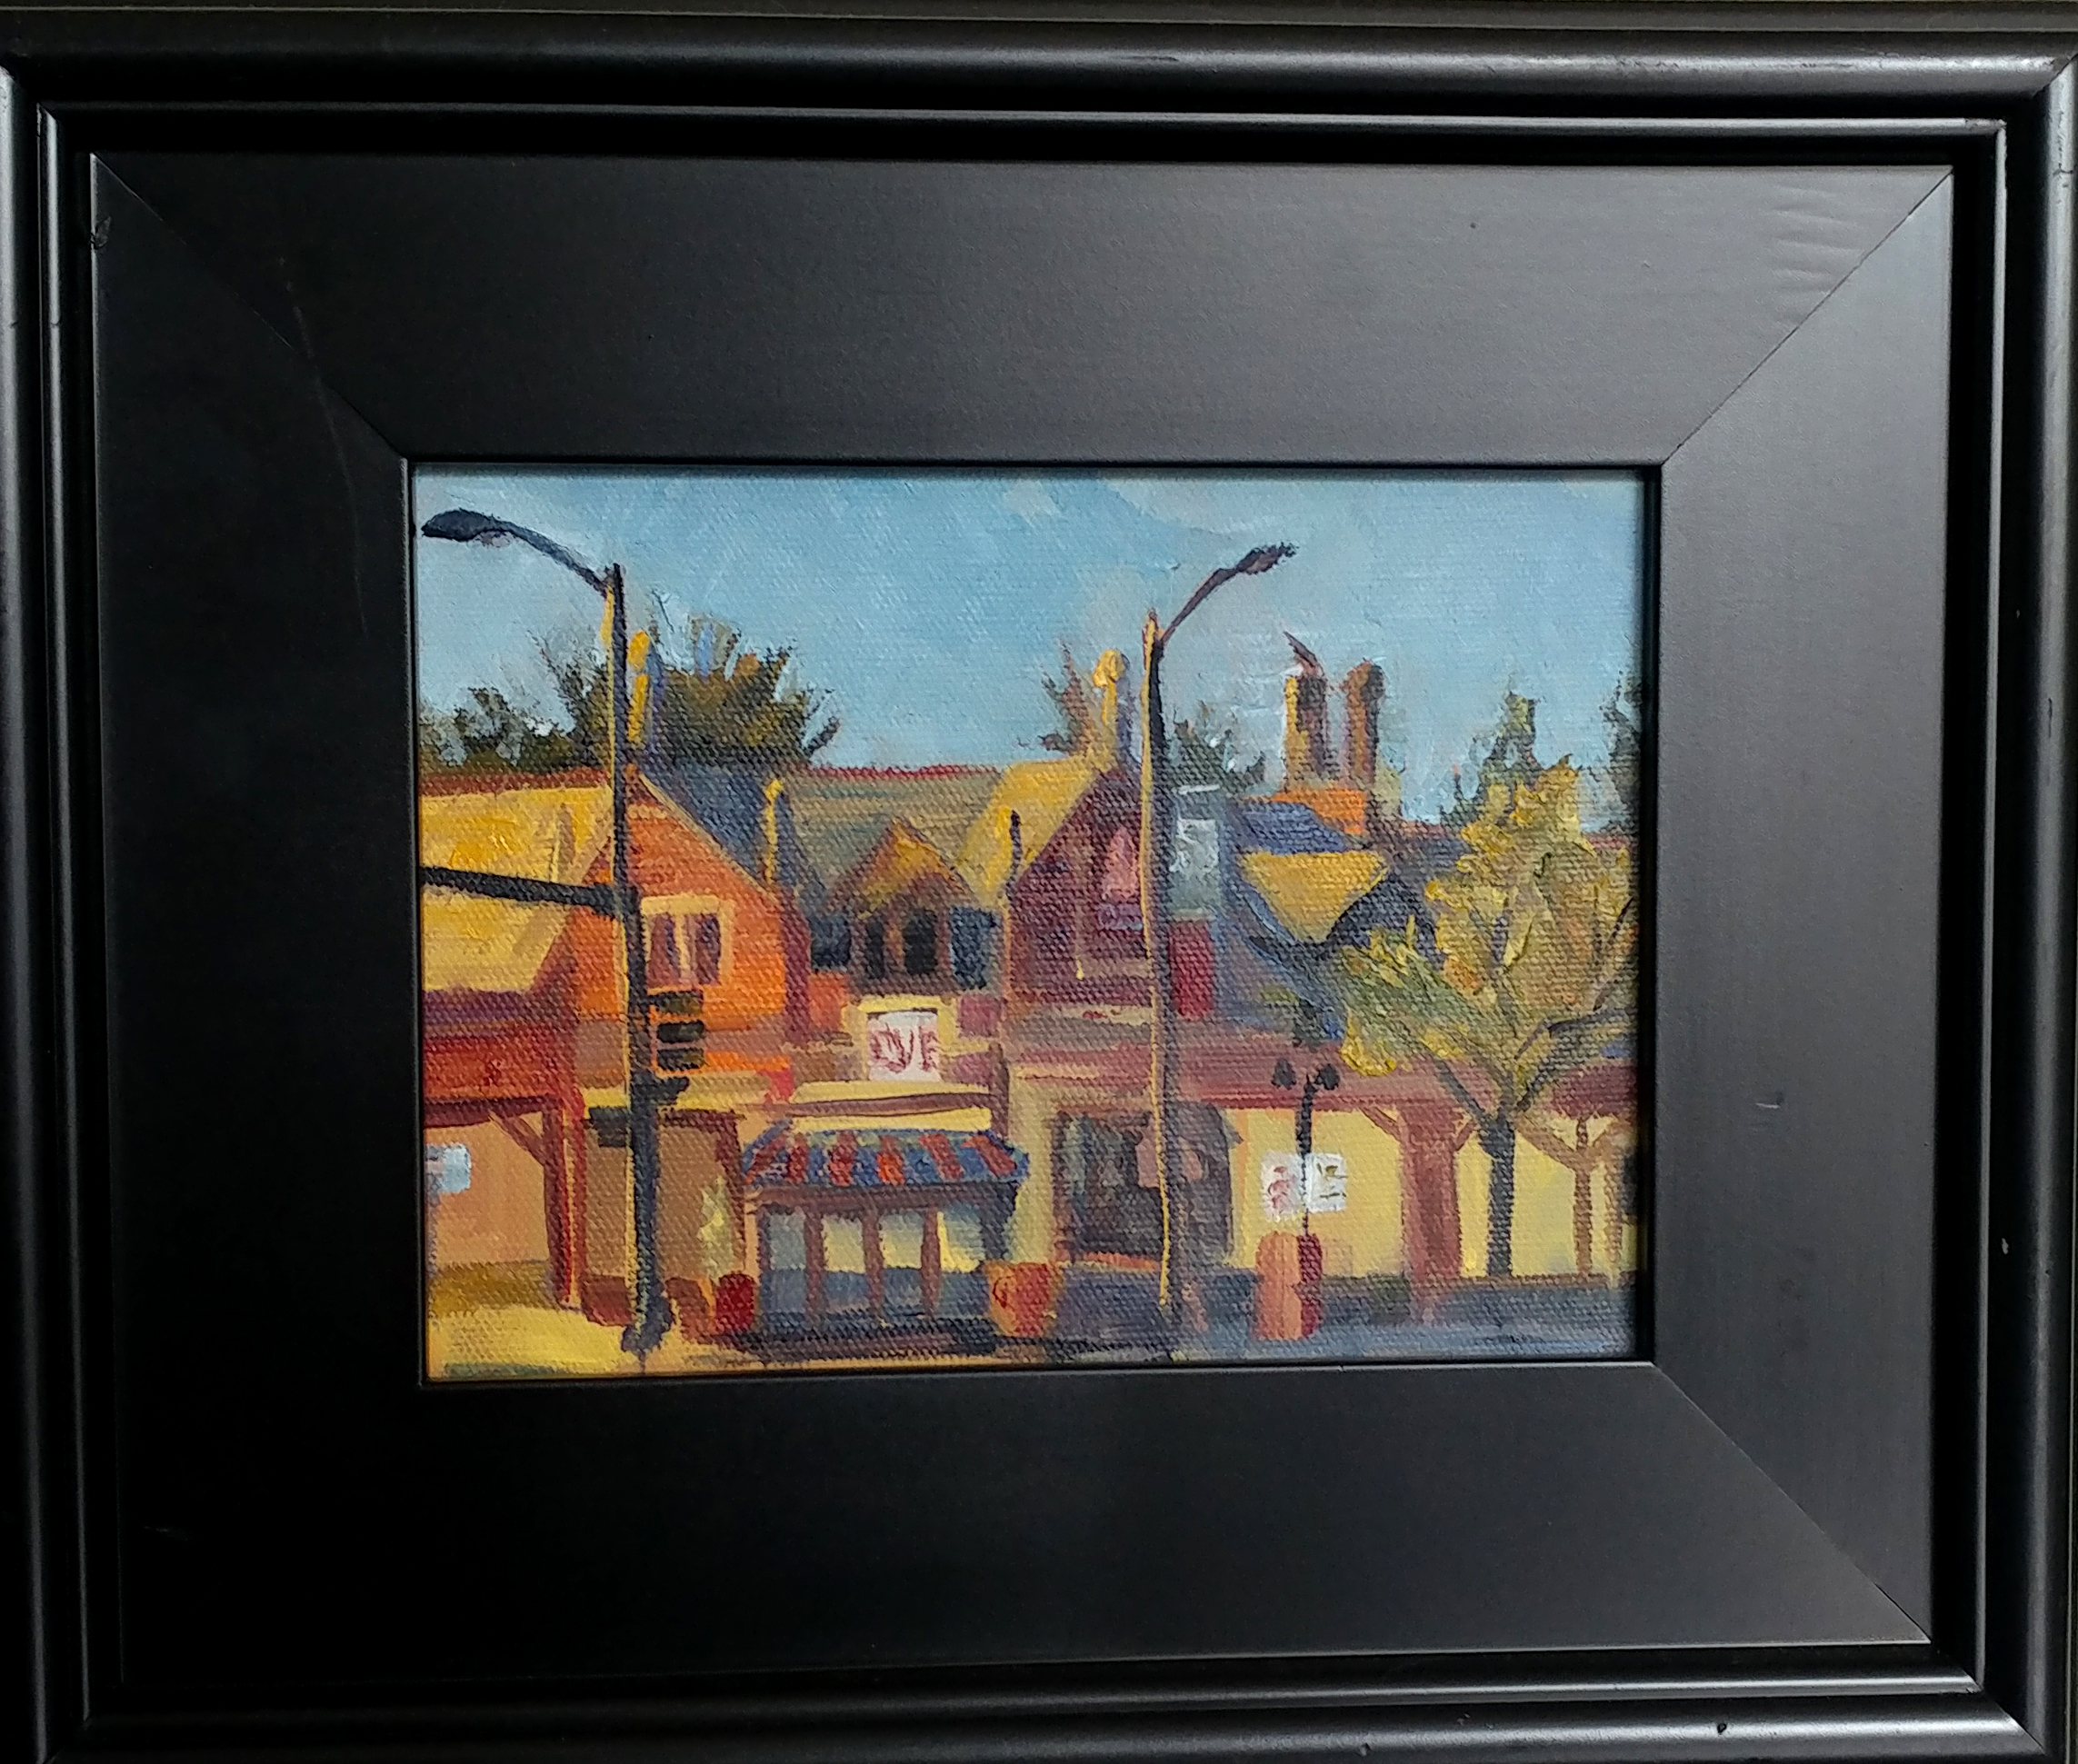 Brookside plein air- 63rd and Brookside road. 6X8 oil on board with 11X14 mahogany frame.